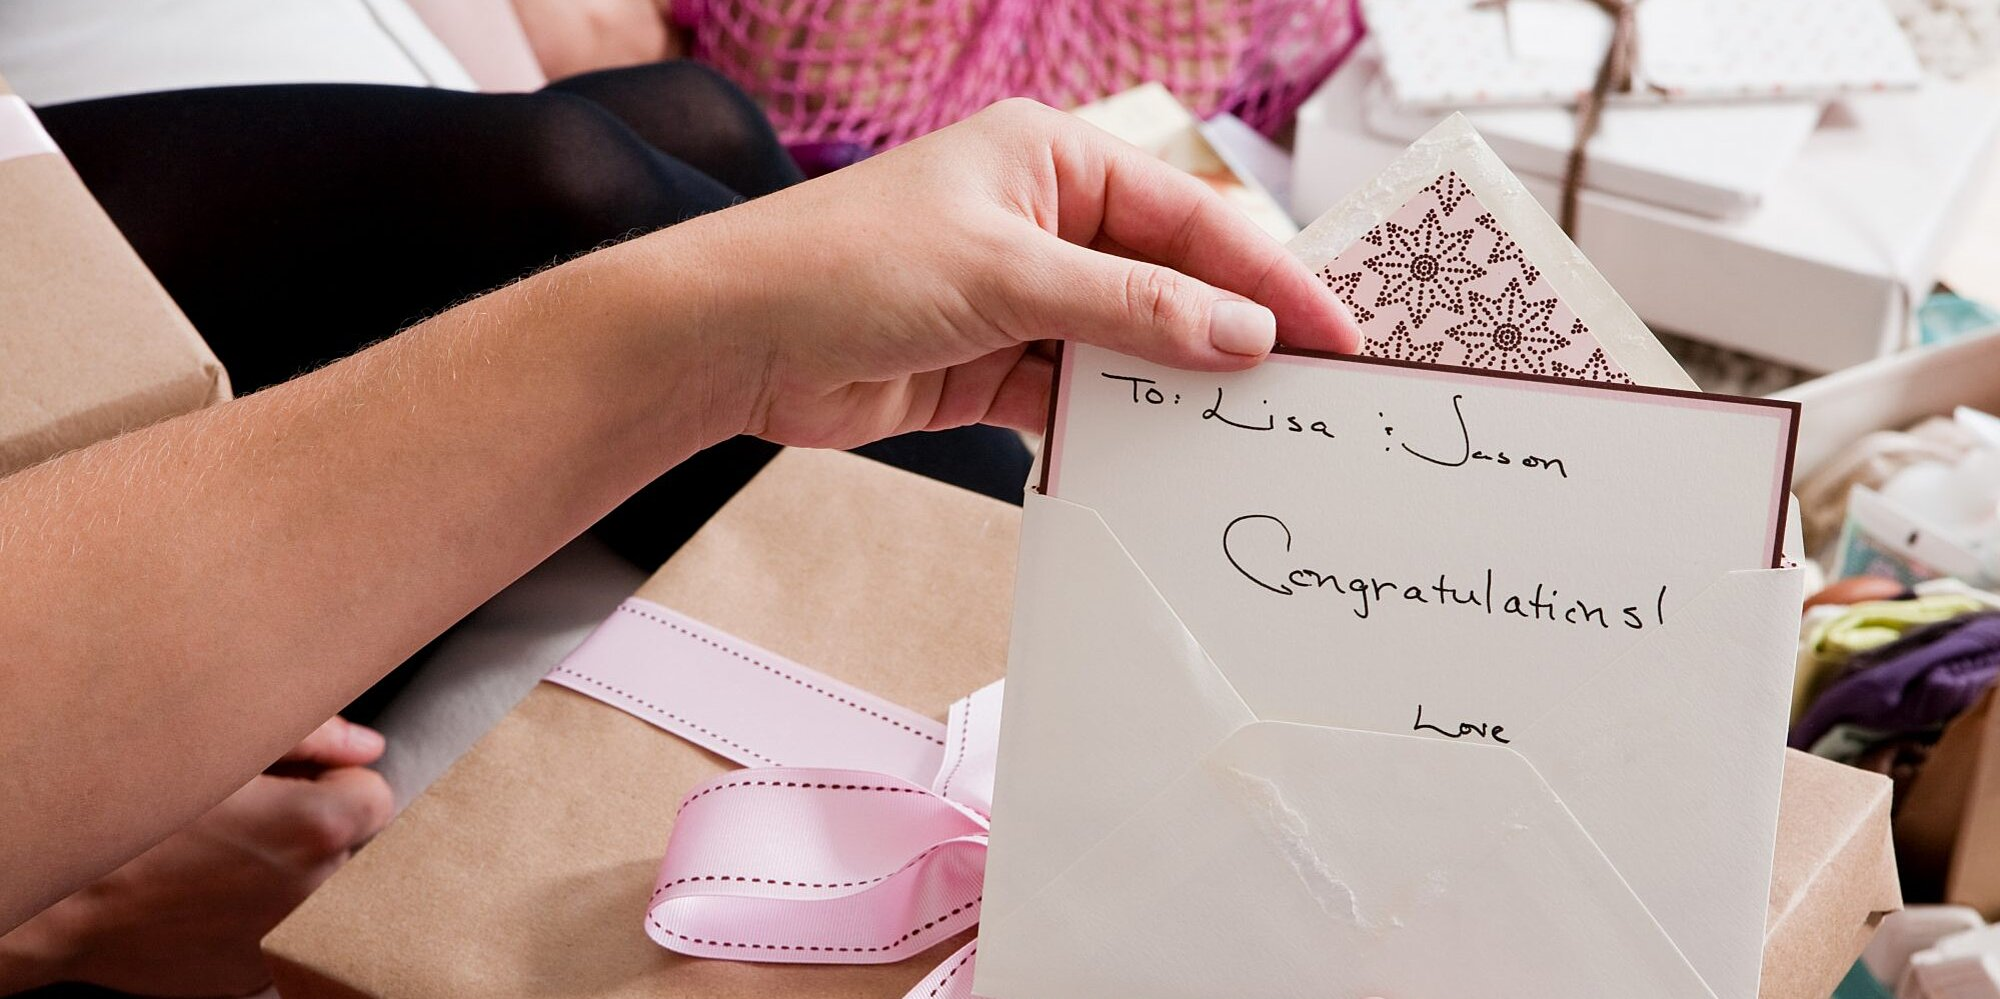 27 Wedding Wishes: What to Write in a Wedding Card  Southern Living